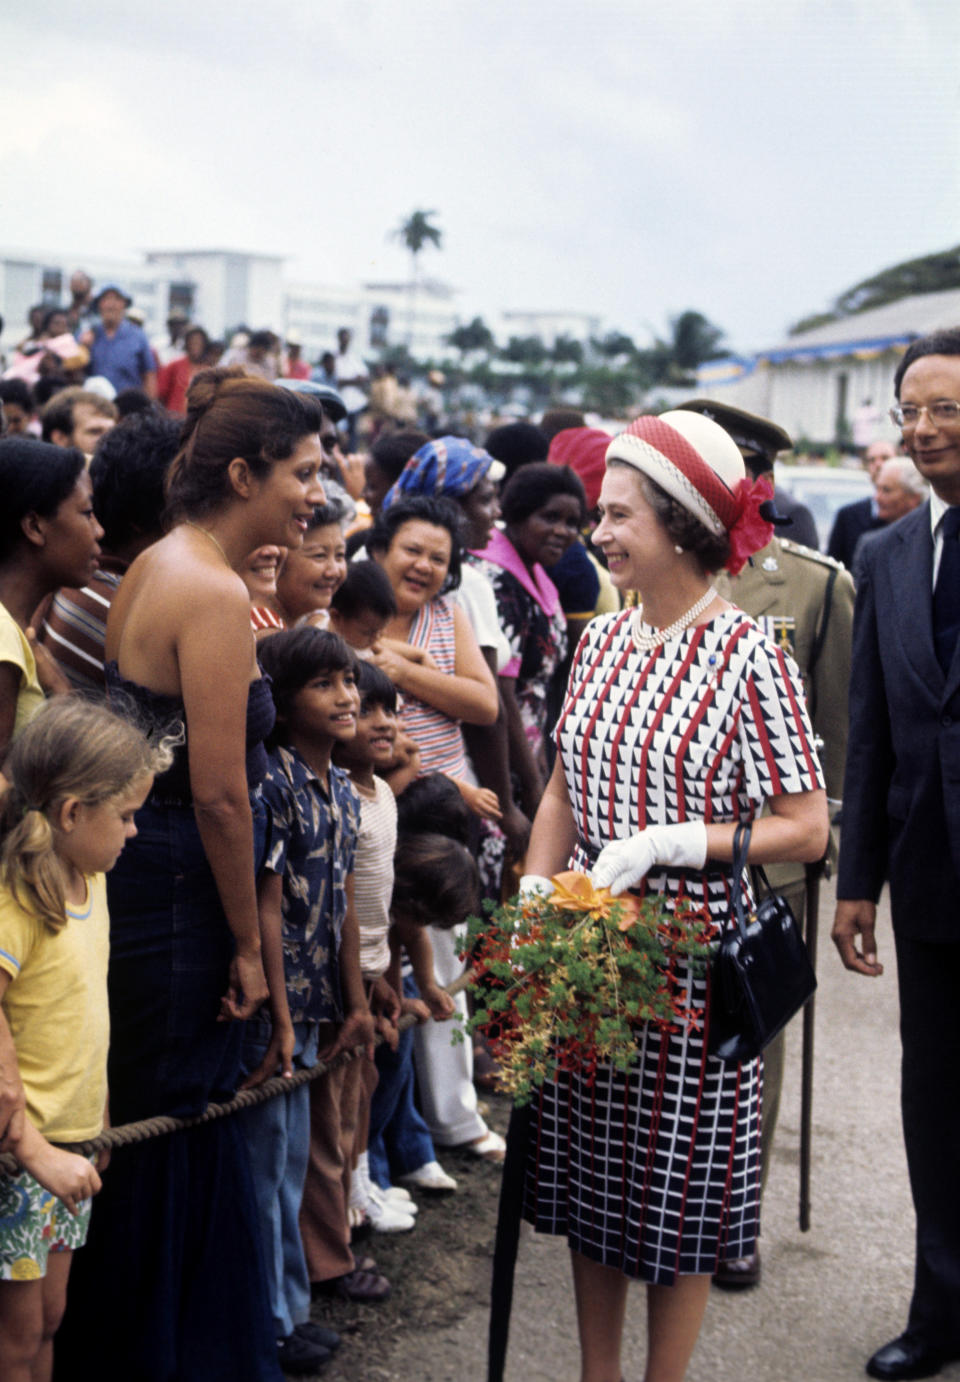 Queen Elizabeth II on a walkabout in Bridgetown, Barbados, during her Silver Jubilee tour of the Caribbean.